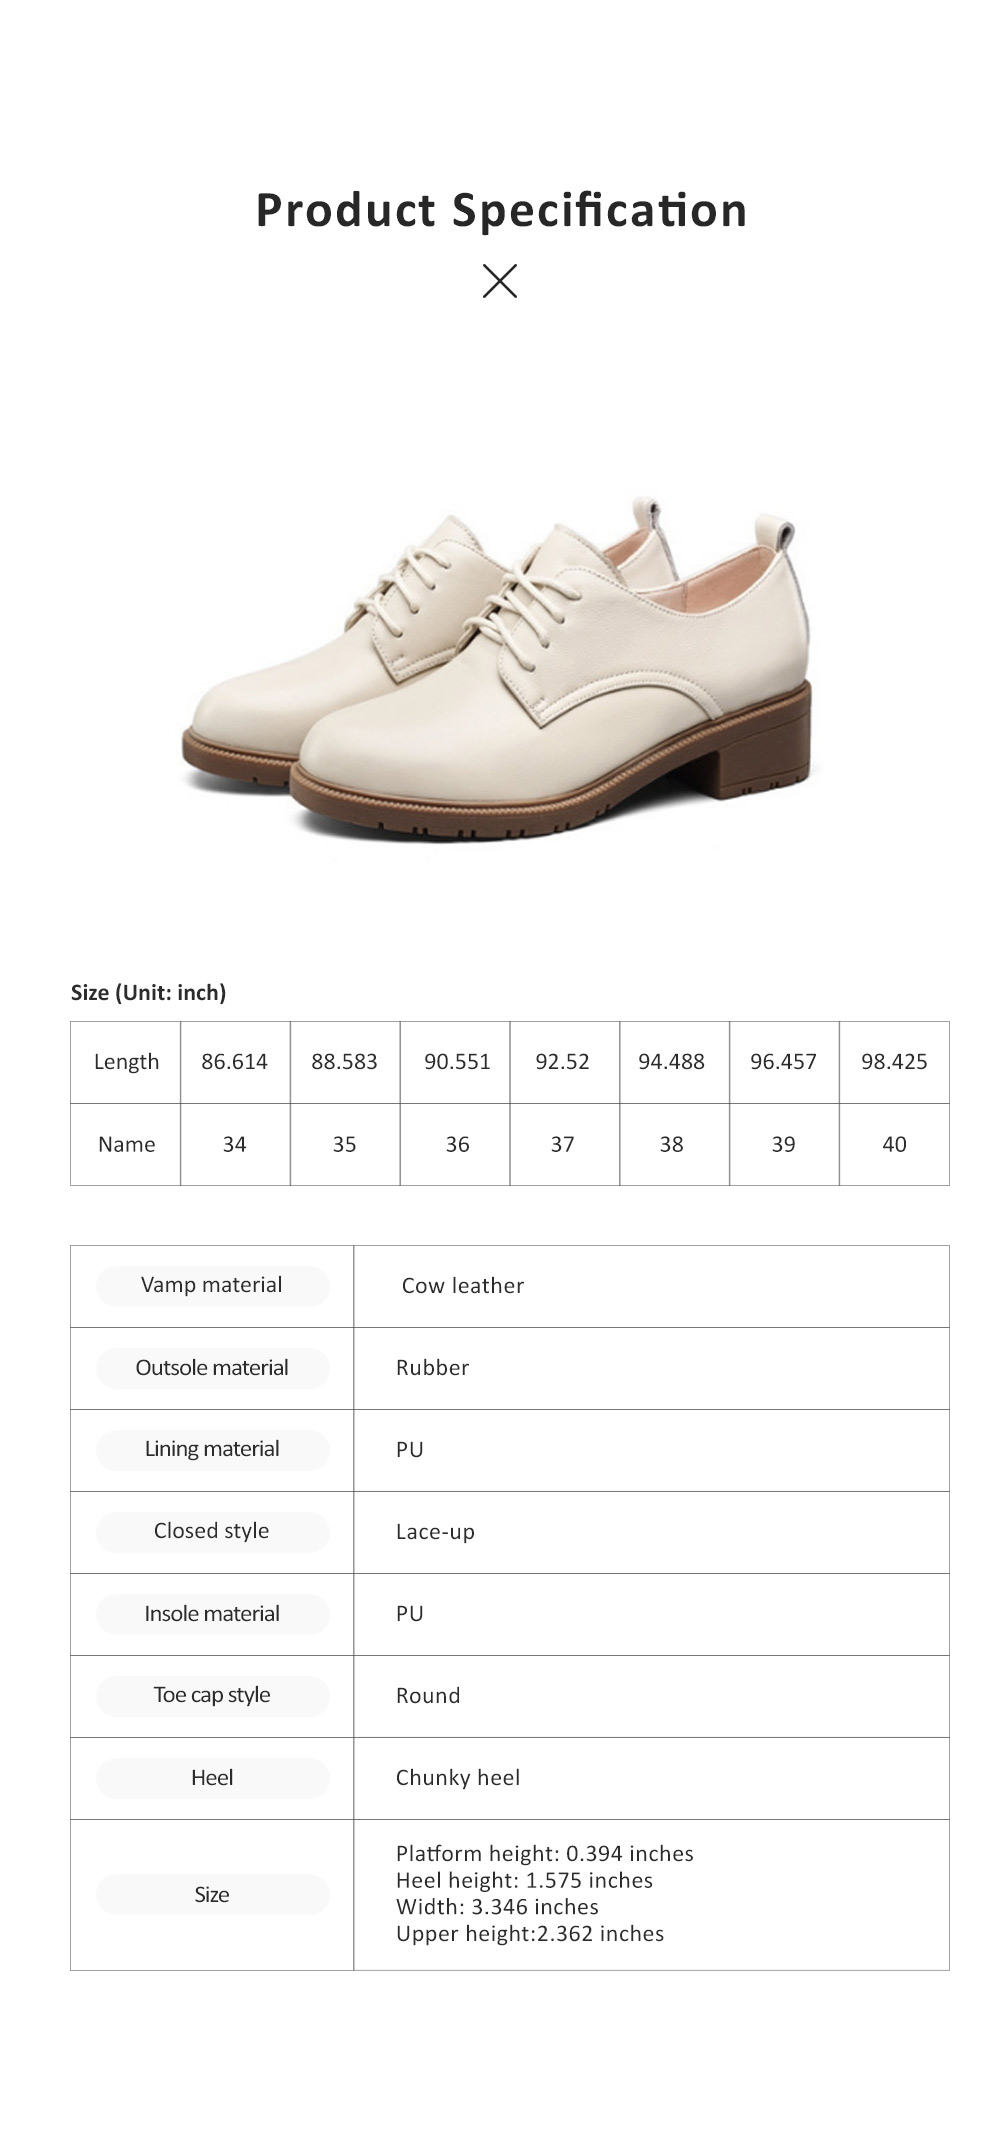 Leisure Leather Low Heel Shoes, Top PU Leather Material Thick Heel Shoes, Oxford Sole Women Shoes 2019 Spring 5